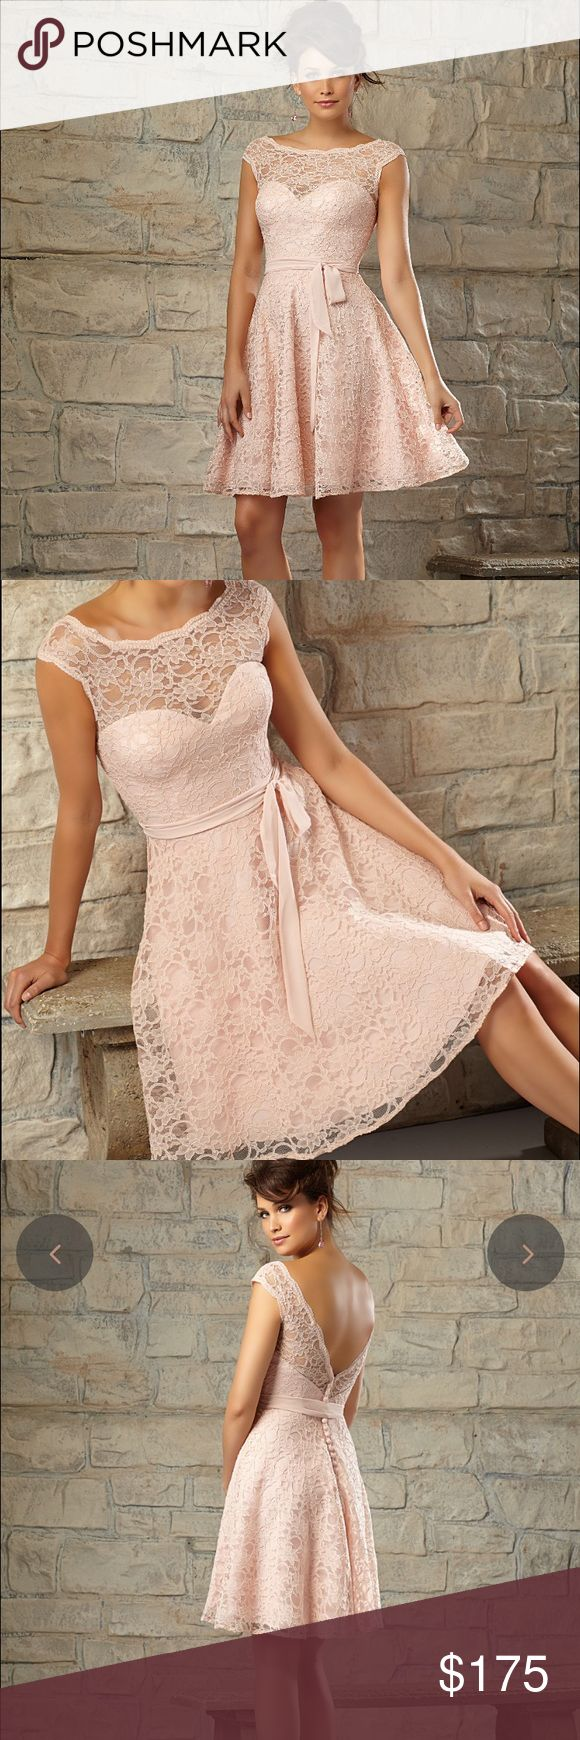 Mori Lee Bridesmaid Dress Style 725 in Blush Beautiful knee length lace dress. Gorgeous lace with button back details, and satin belt/ribbon. Style: #725 Color: Blush Size: 16 Mori Lee Dresses Wedding